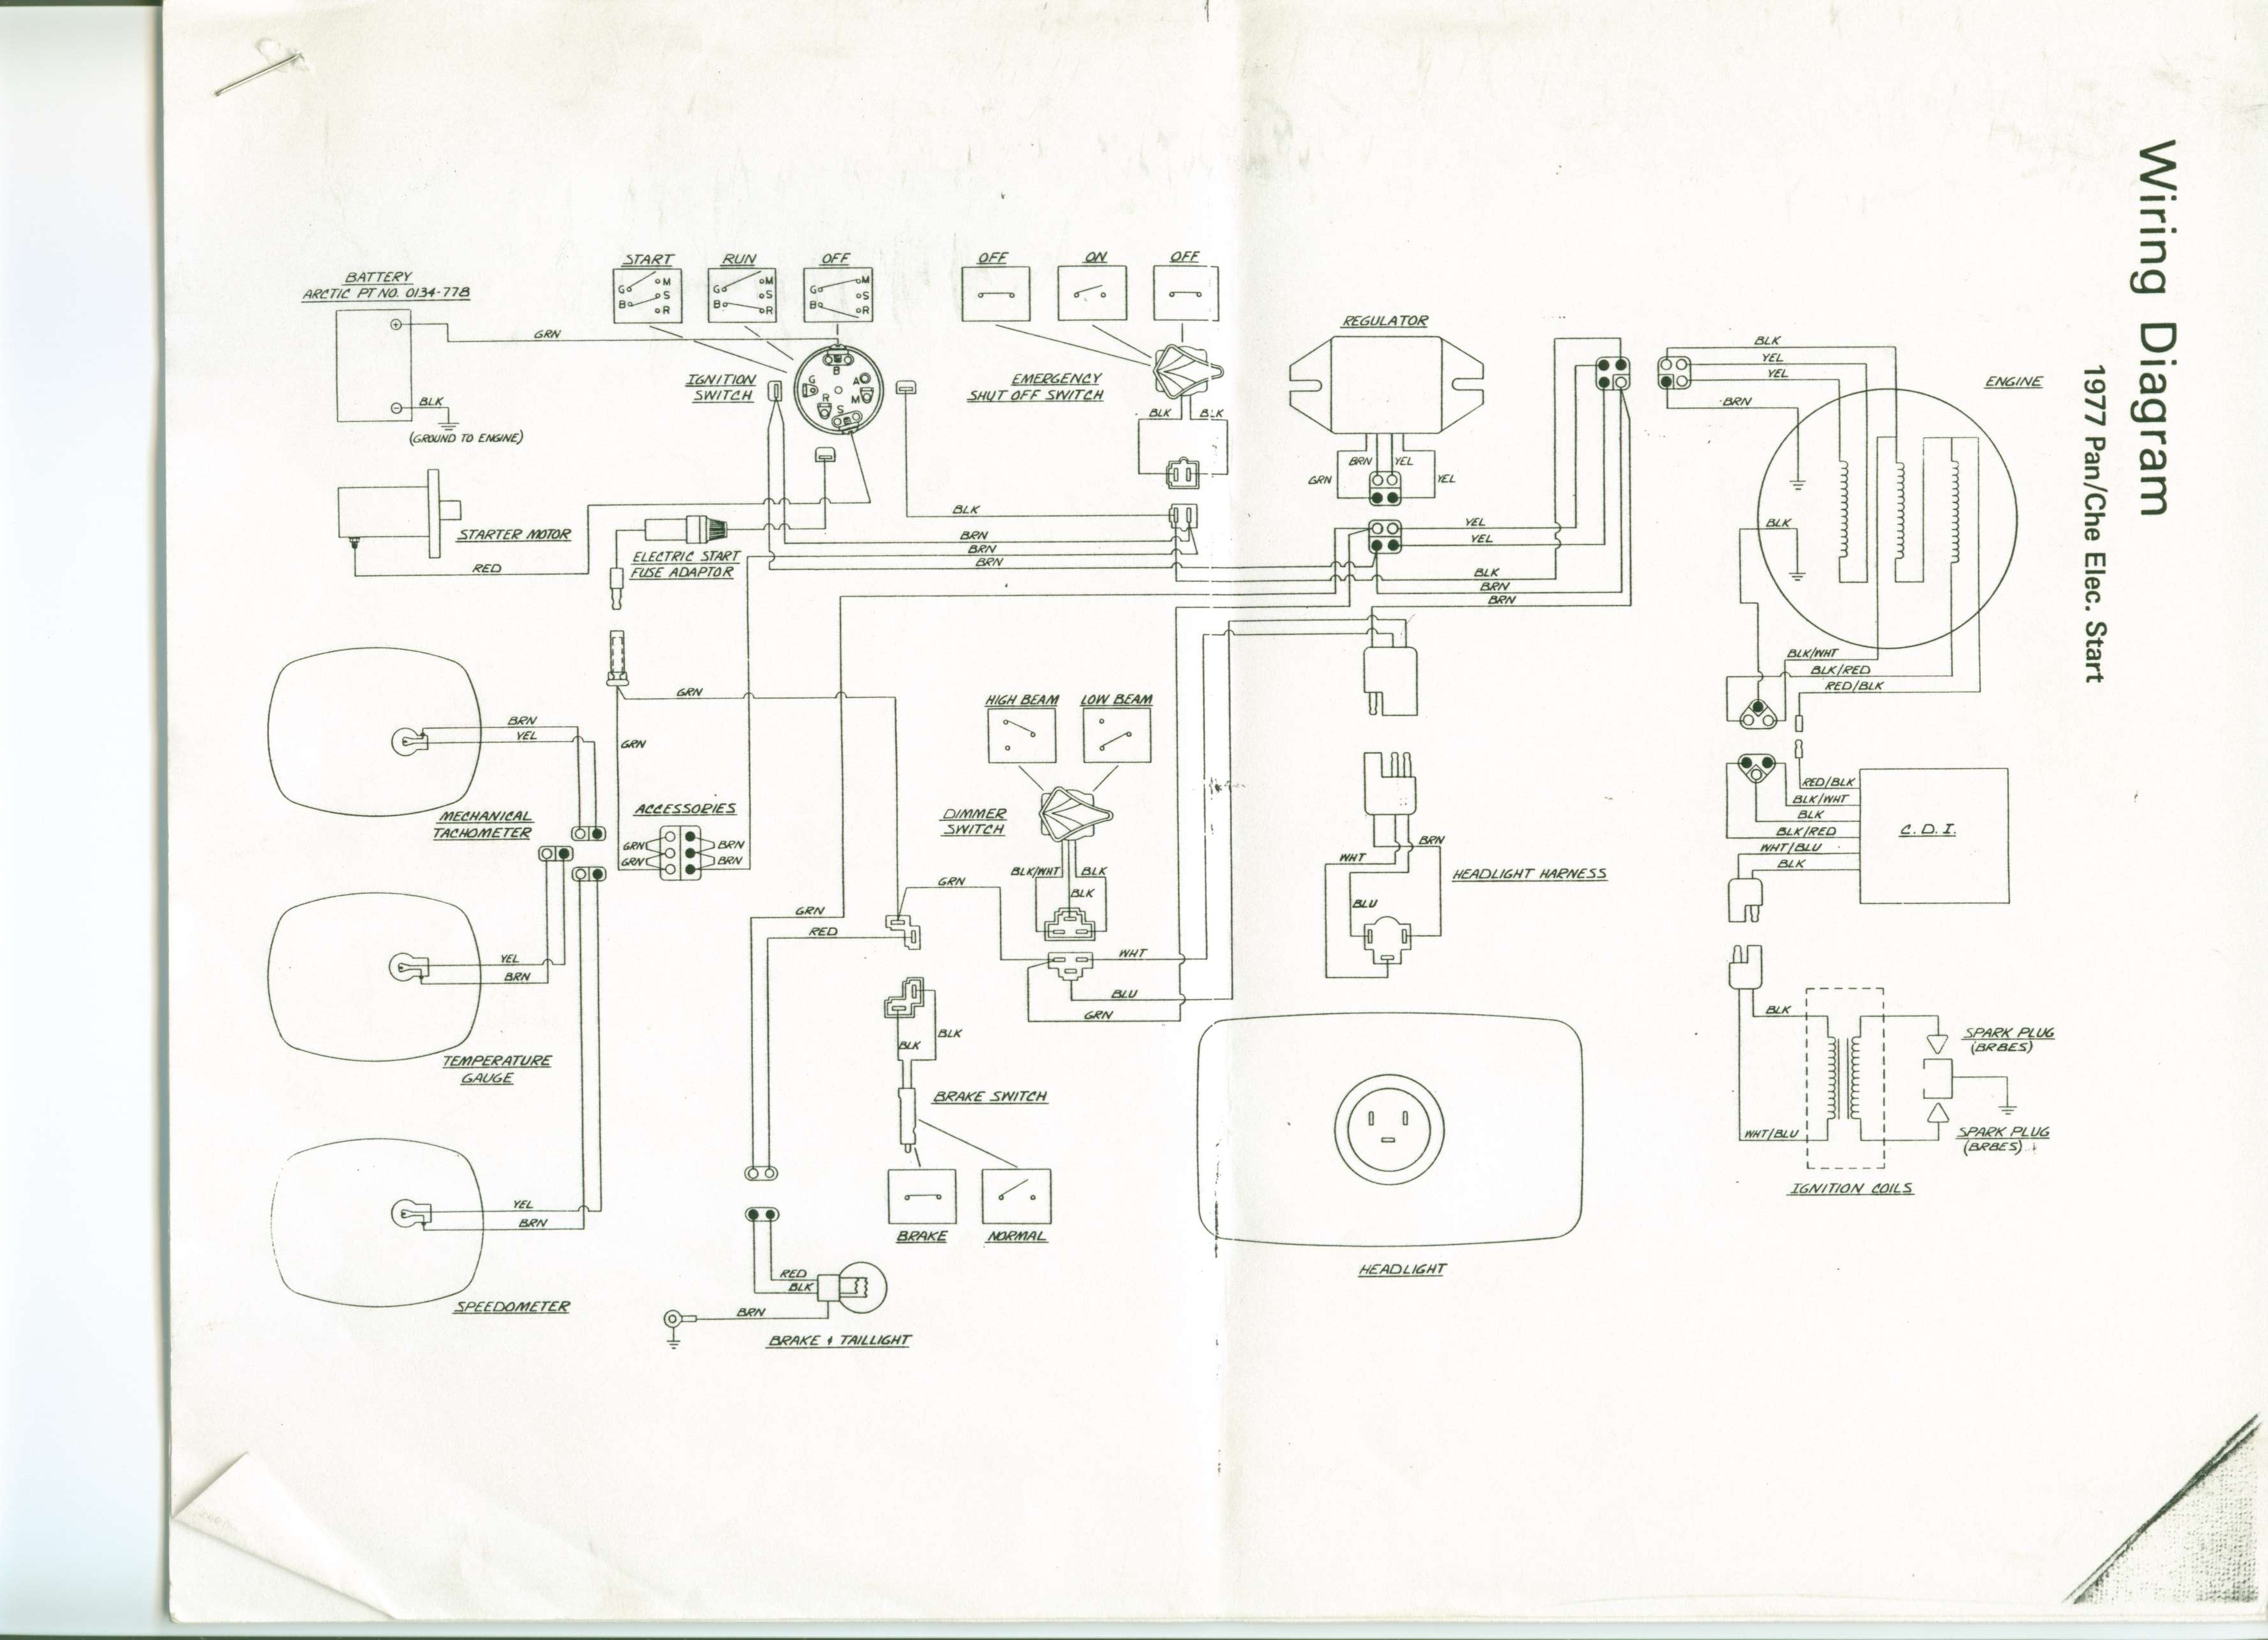 416c Caterpillar Wiring Schematic